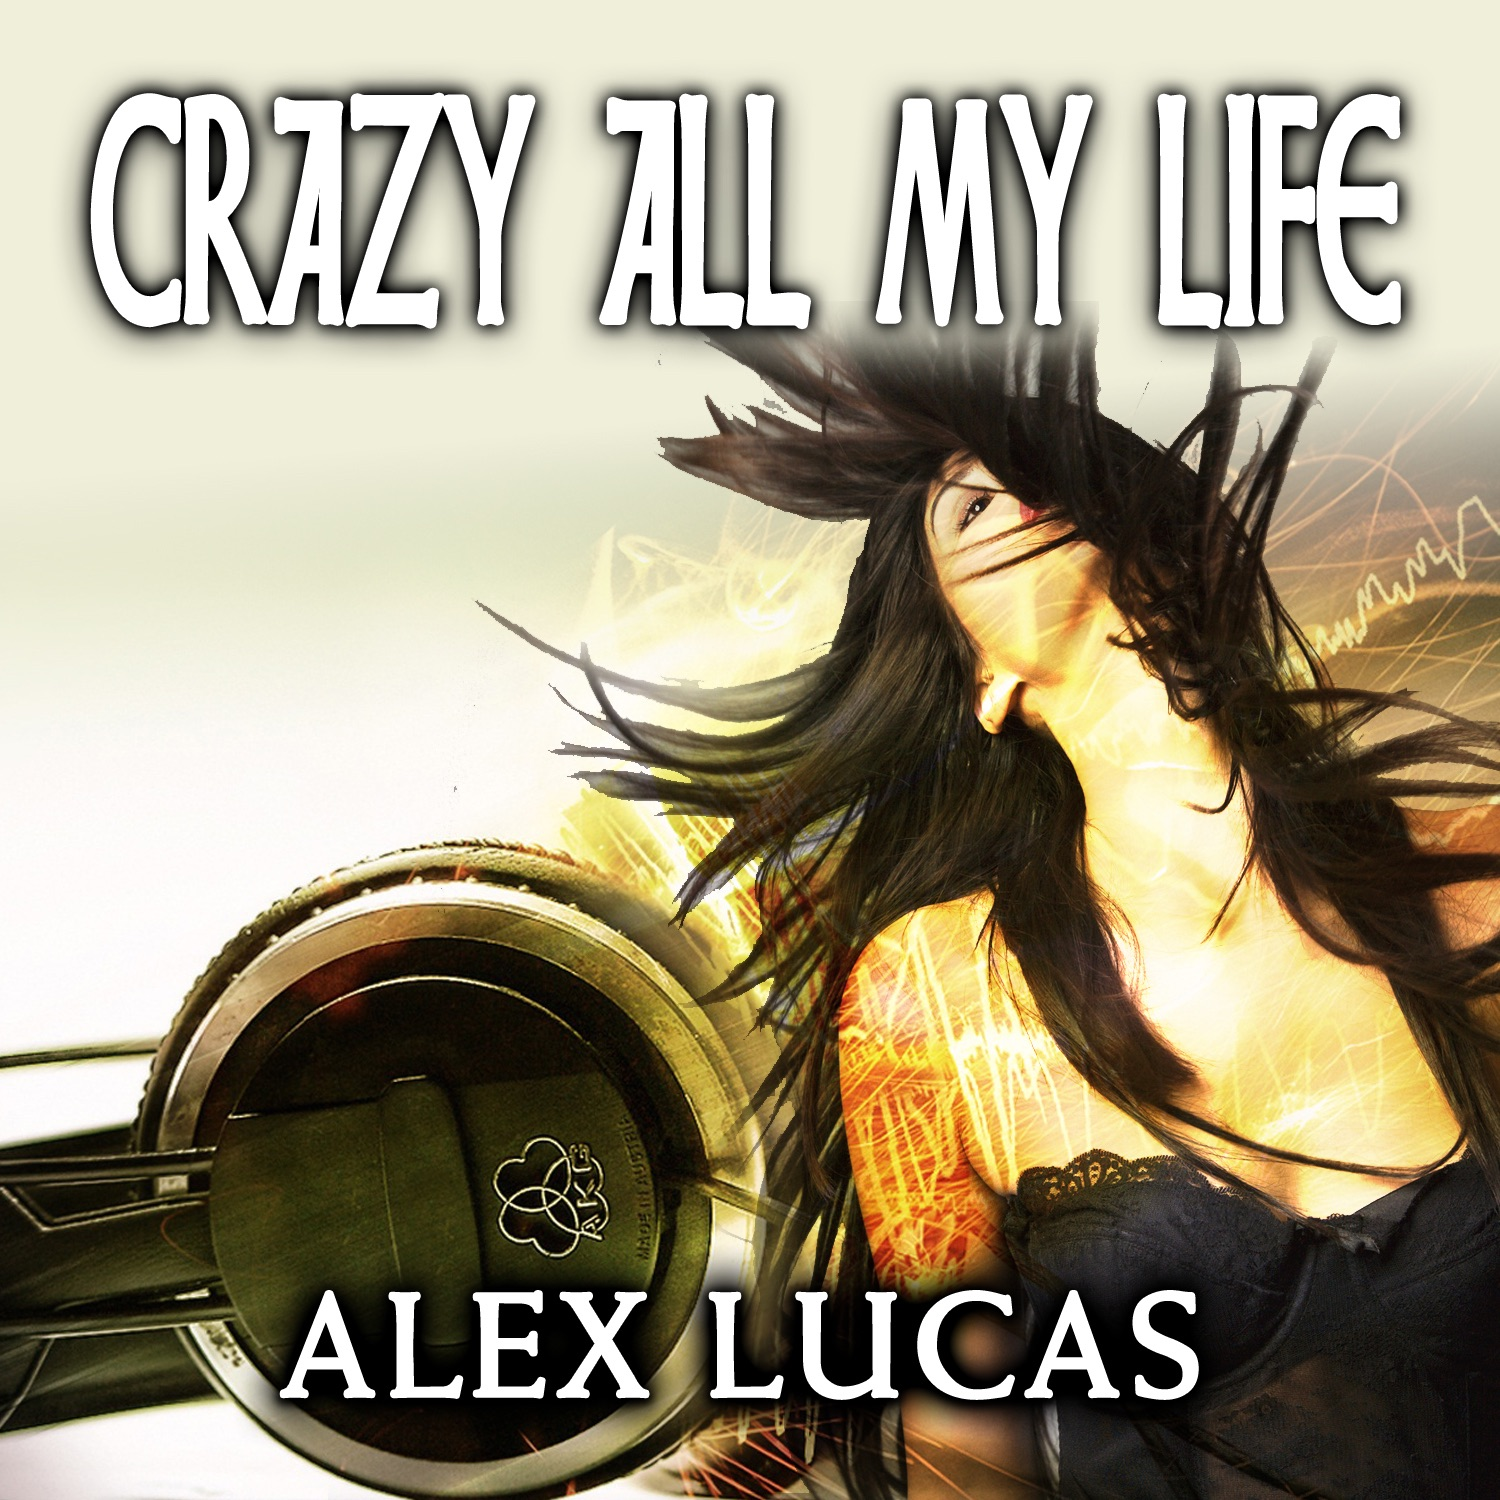 Crazy All My Life - Single